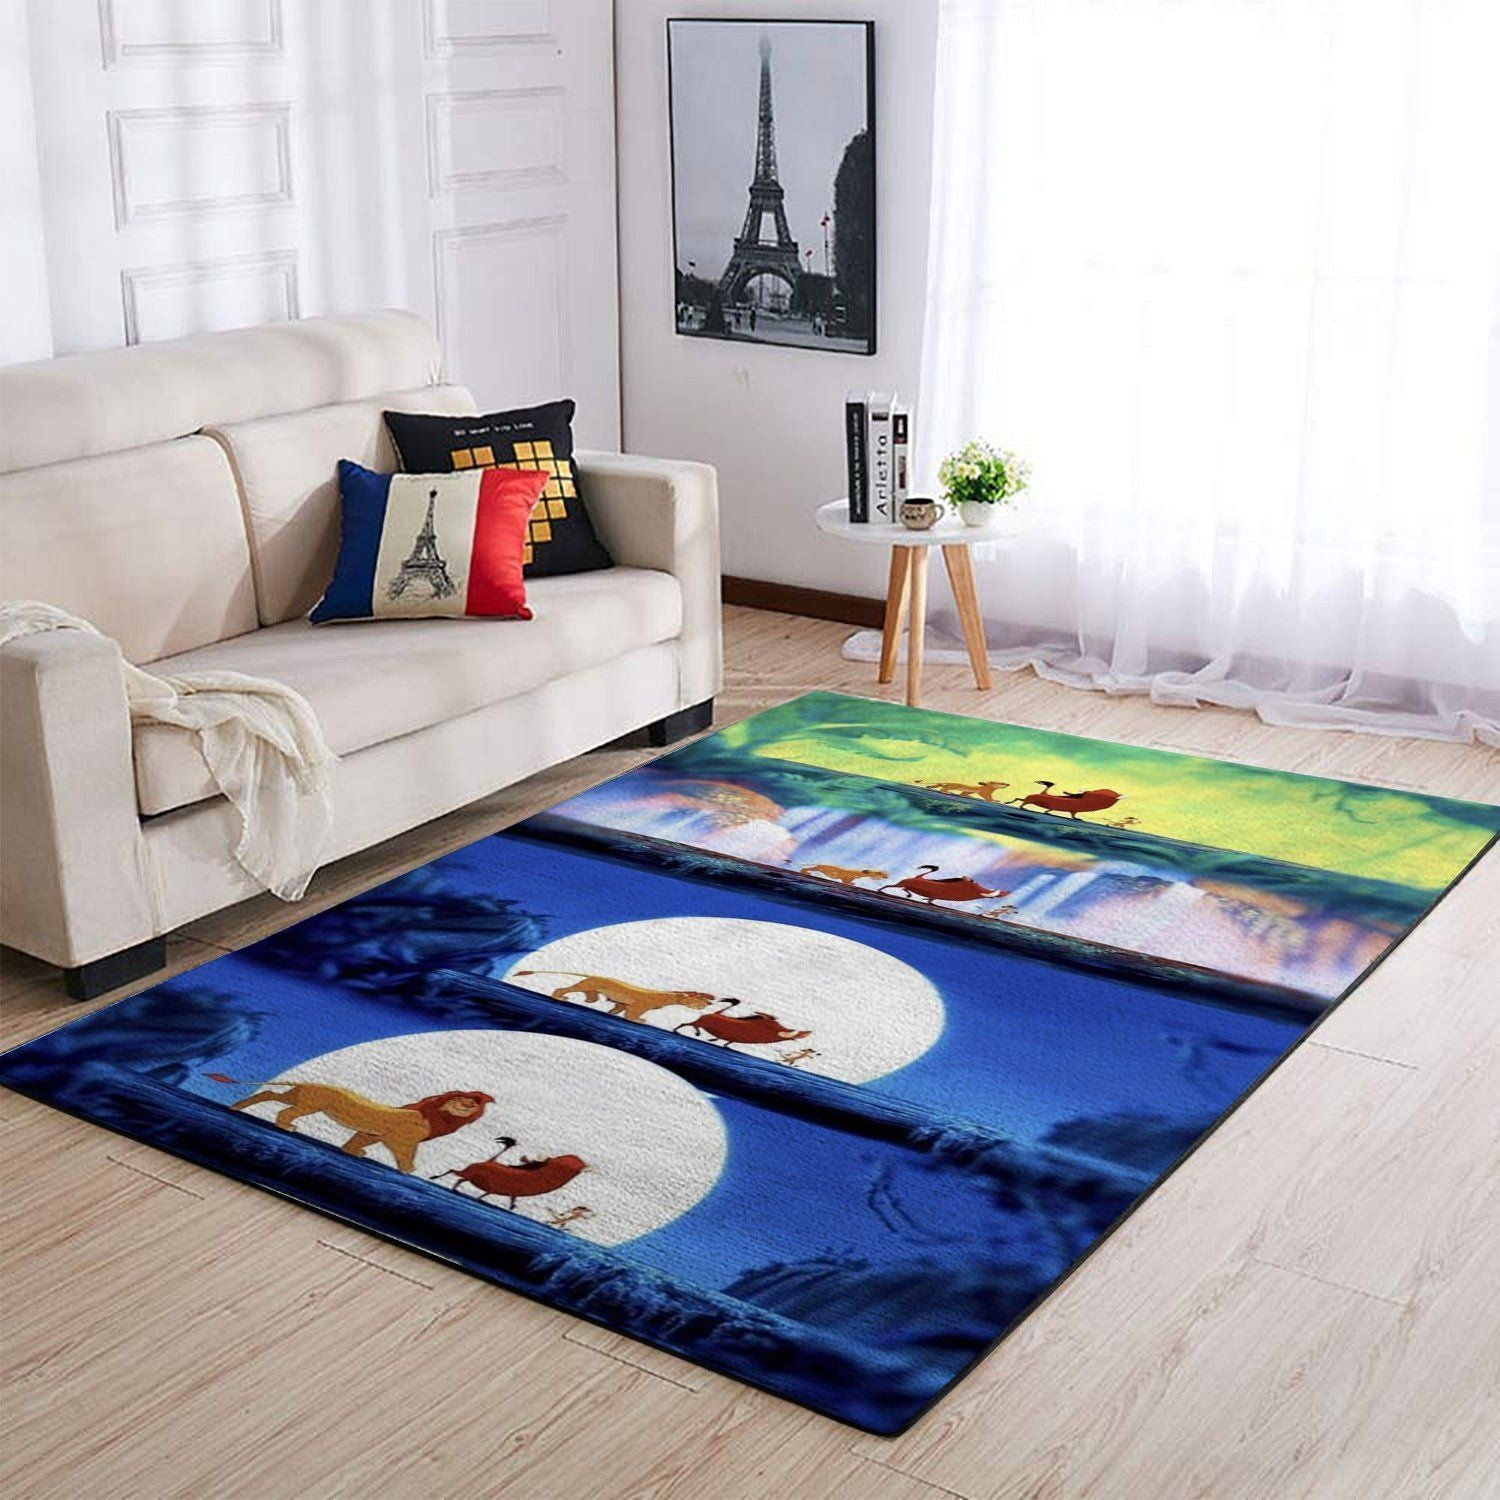 The Lion King Area Rugs, Disney Movie Living Room Carpet, Custom Floor Decor